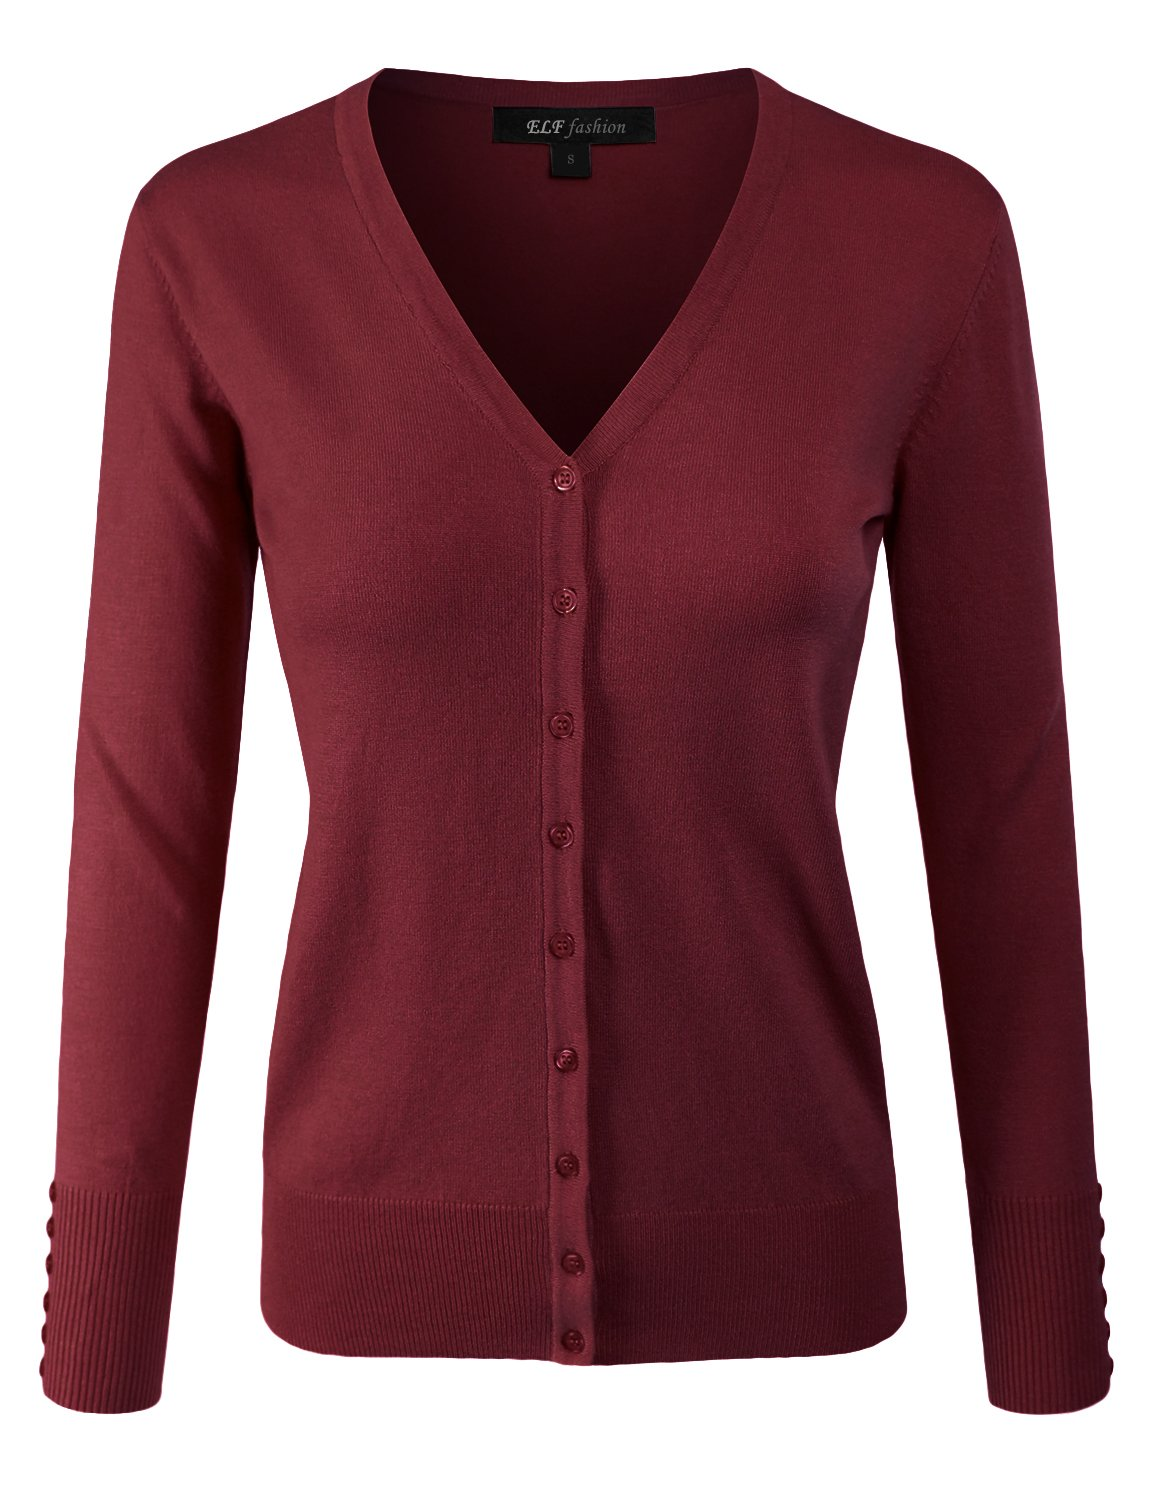 ELF FASHION Women Top Long Sleeve Button V-Neck Knit Sweater Cardigan (size S~3XL) WINE 1XL